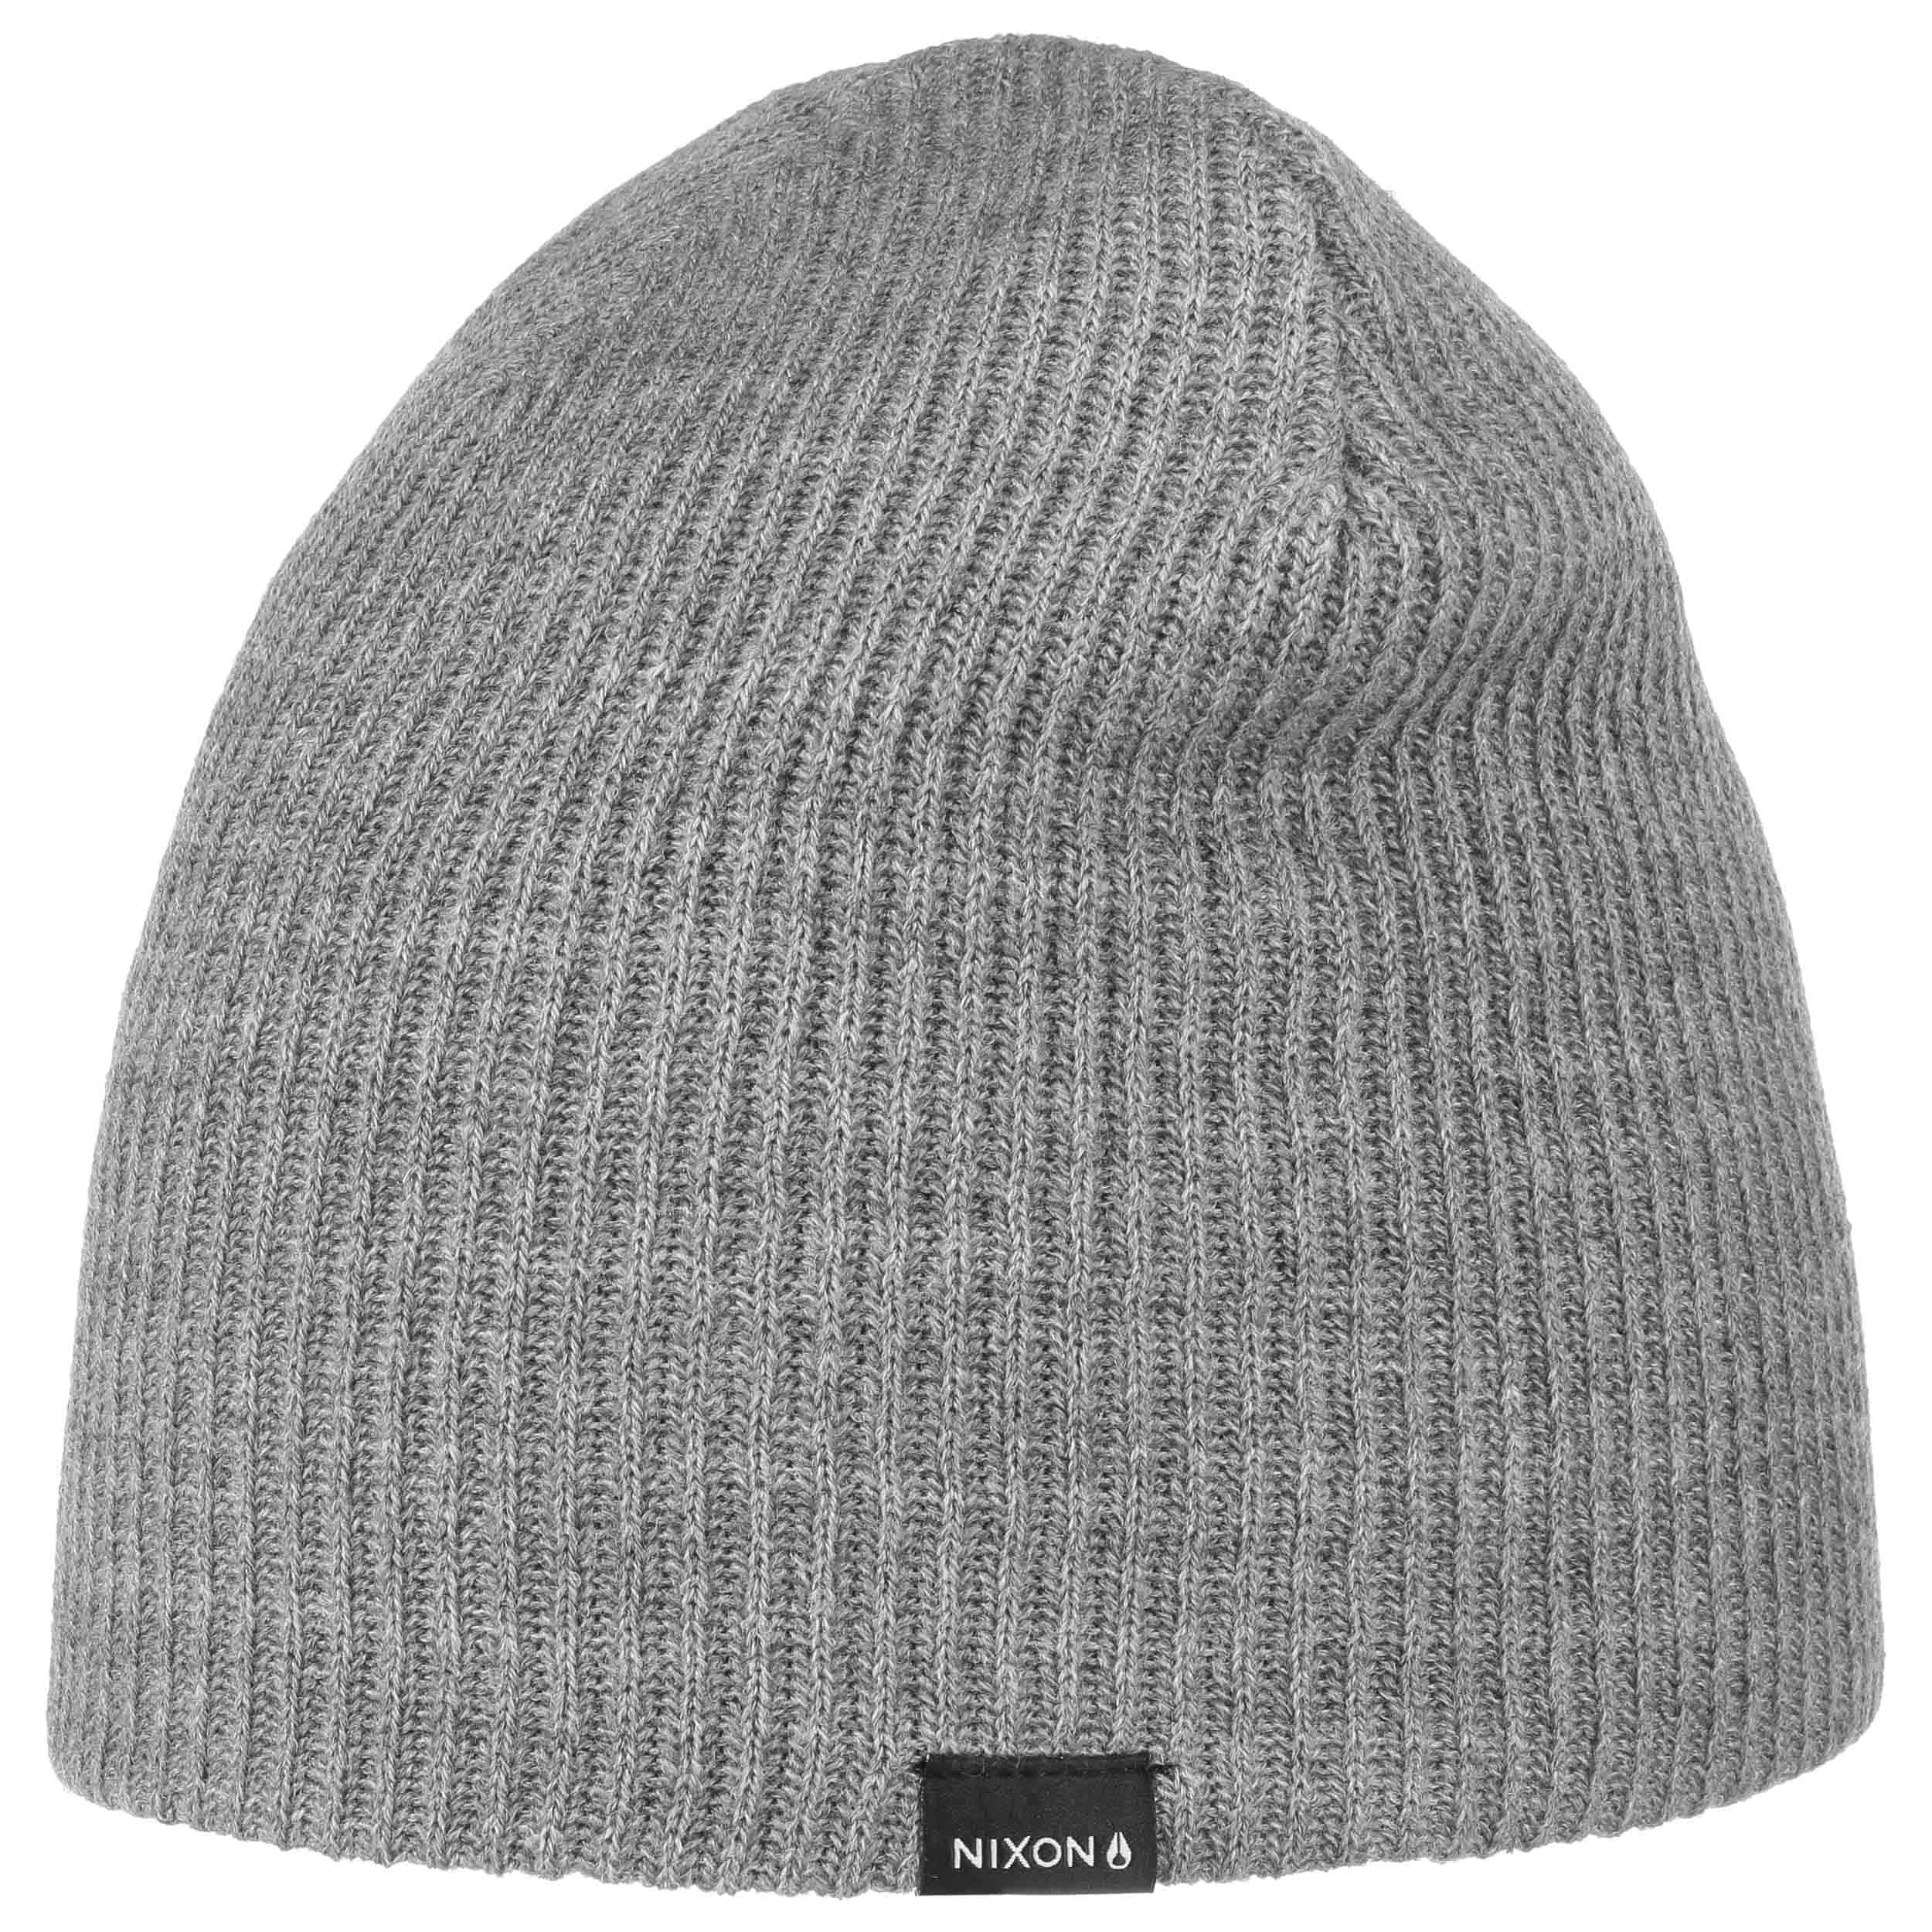 68a22703203 ... Ribbed Beanie by Nixon - anthracite 3 ...